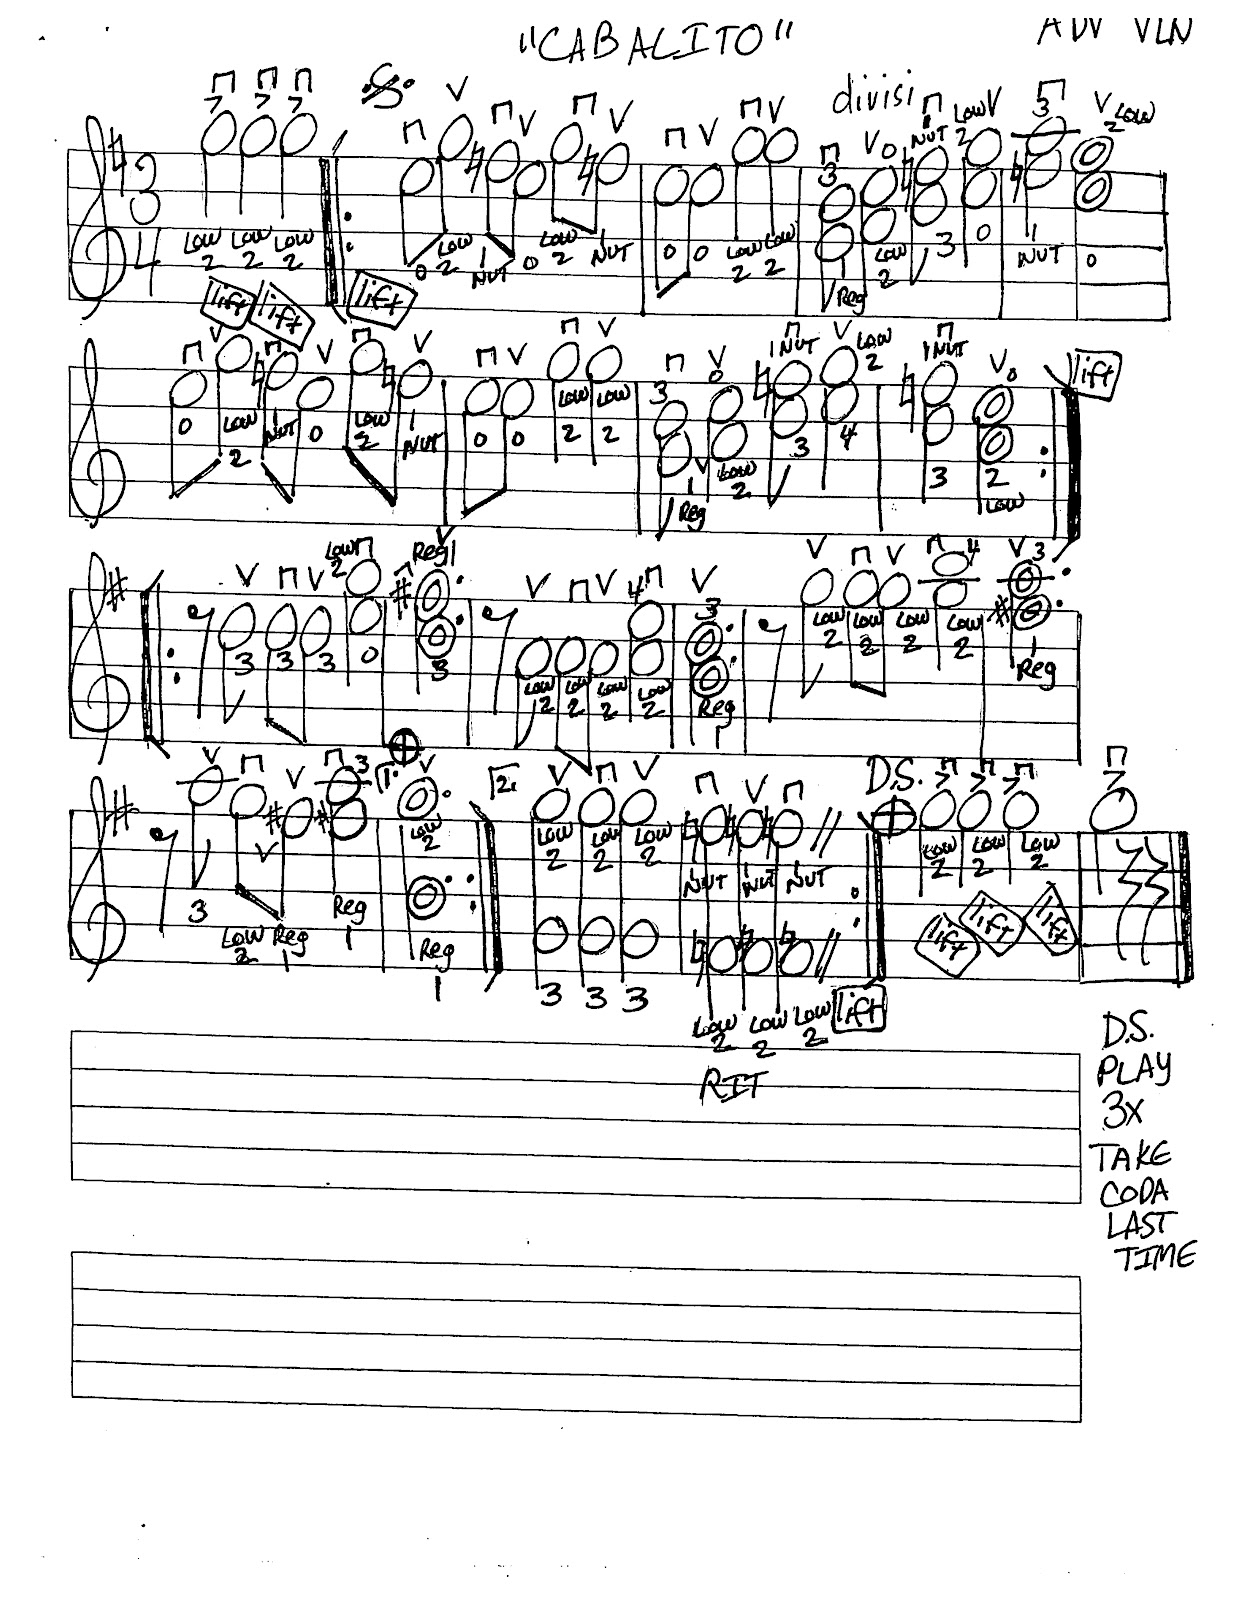 Miss Jacobson S Music Cabalito Music Worksheets